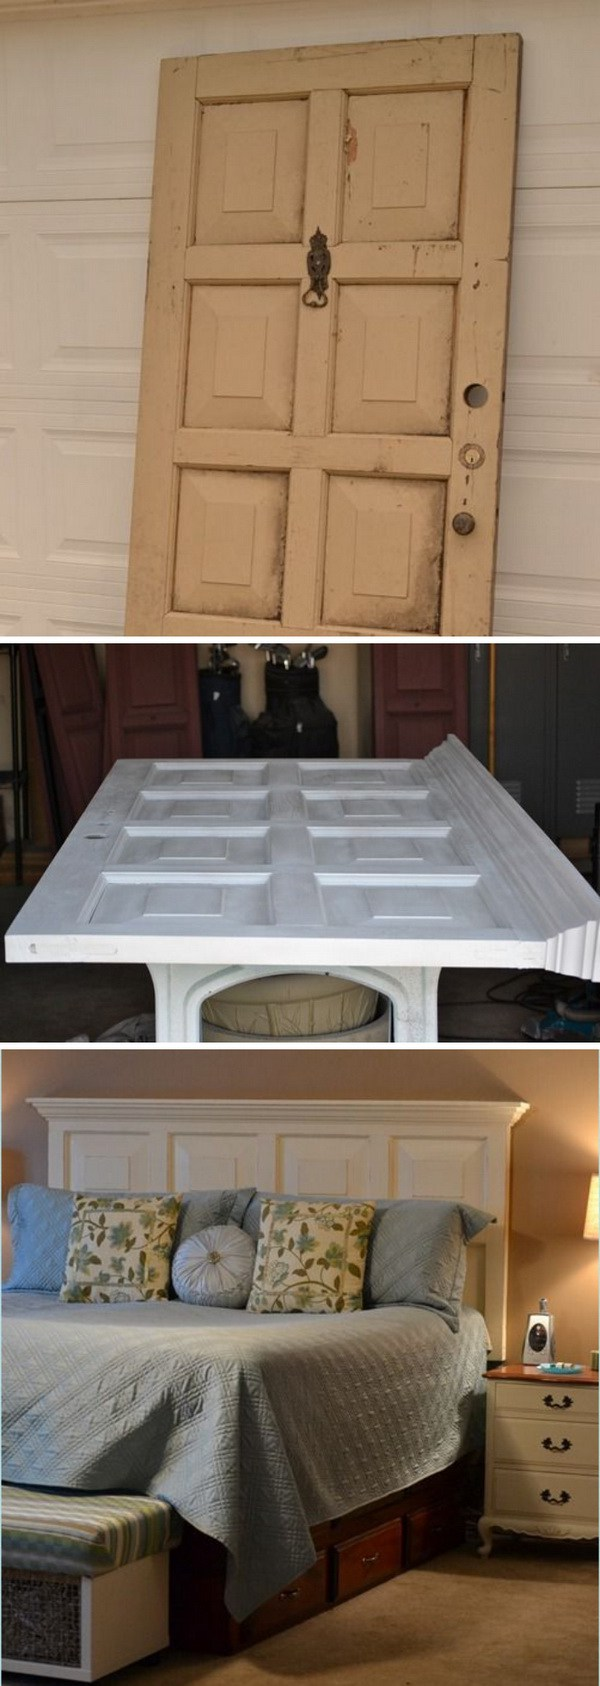 DIY Door Headboard: A creative way to upcycle your old doors! Like this one, you can turn the old door into a gorgeous DIY headbord with some white paint and a bit of handiwork.